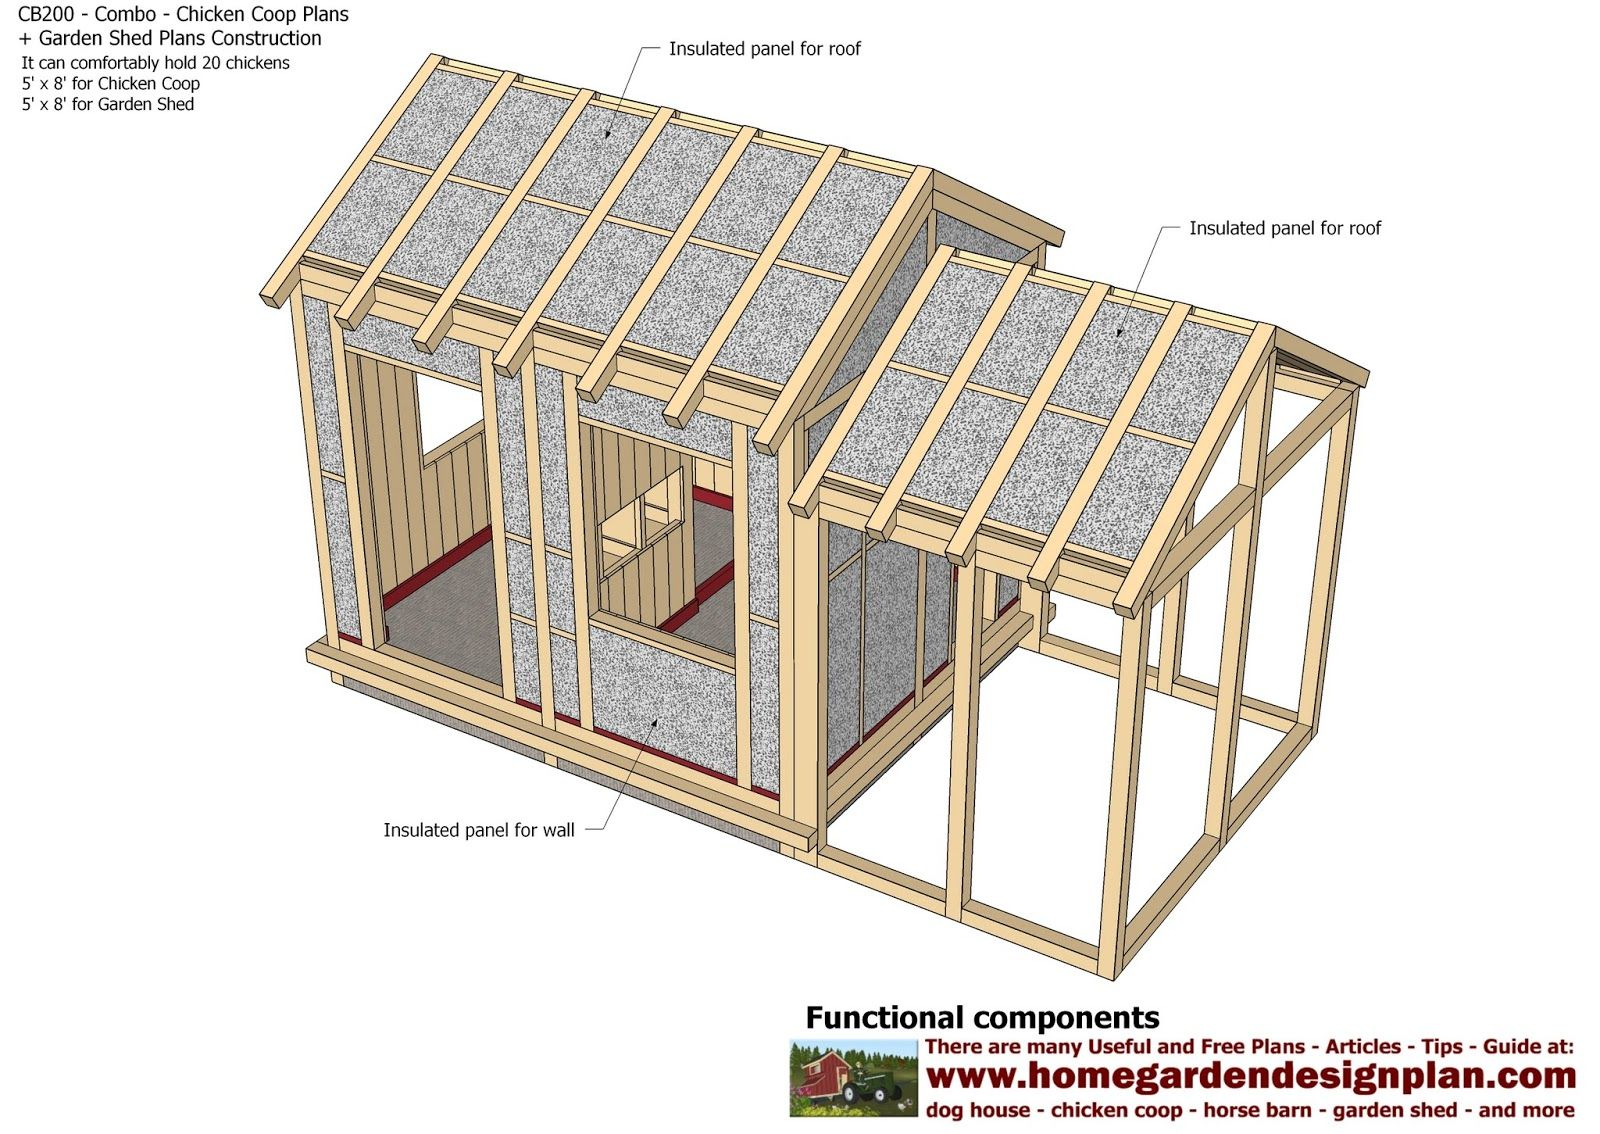 CB200 - Combo Plans - Chicken Coop Plans Construction ...